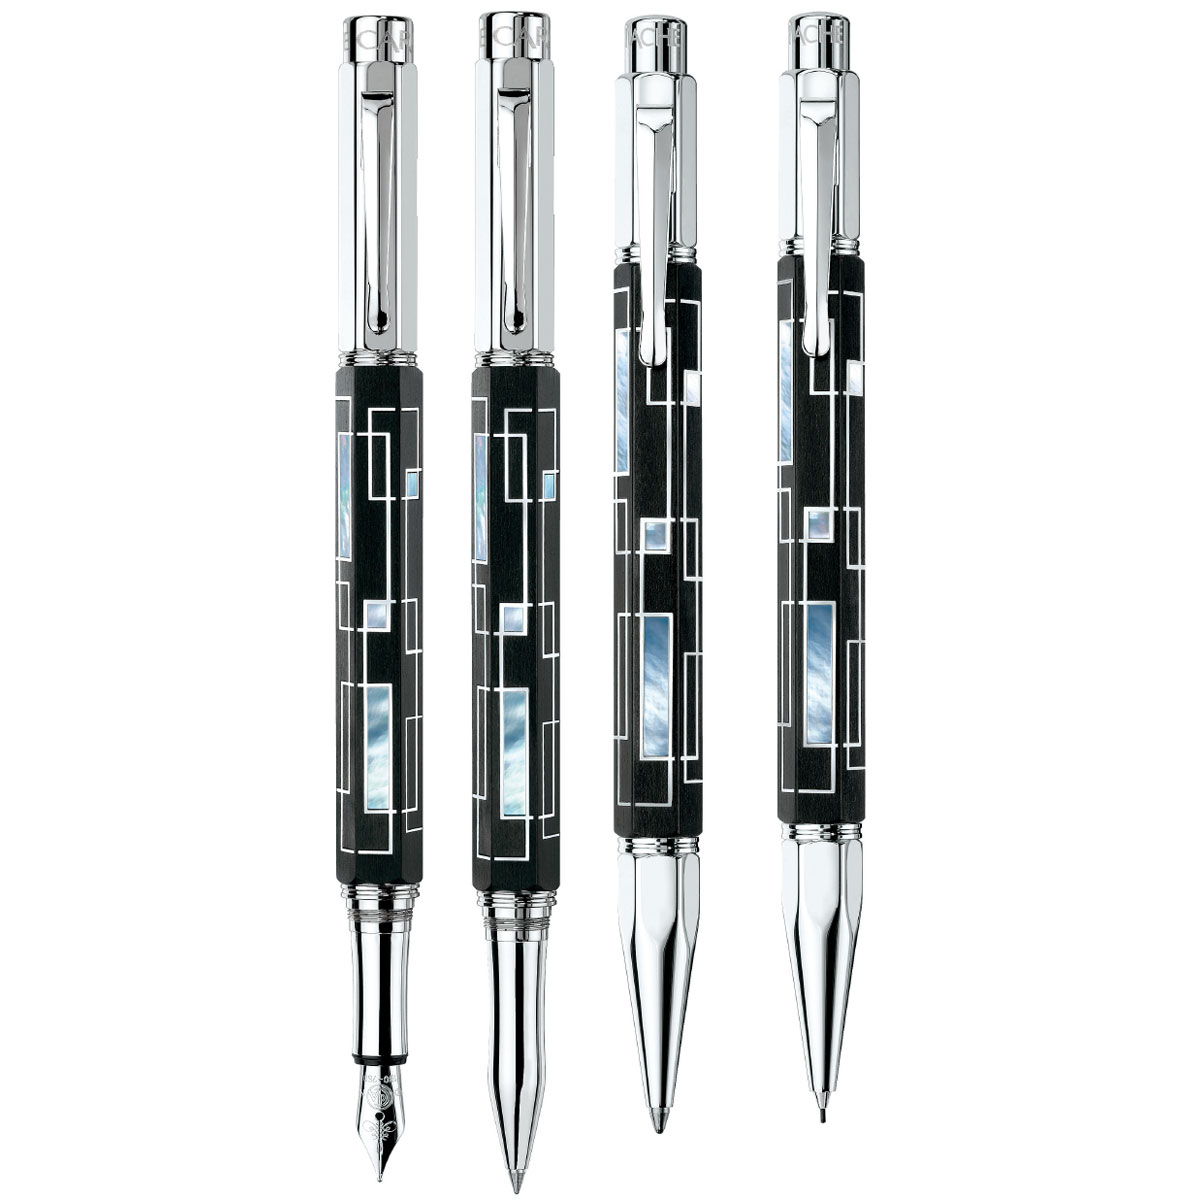 Caran d'Ache Varius Link Series 1 Gift Pen Set - Limited Edition